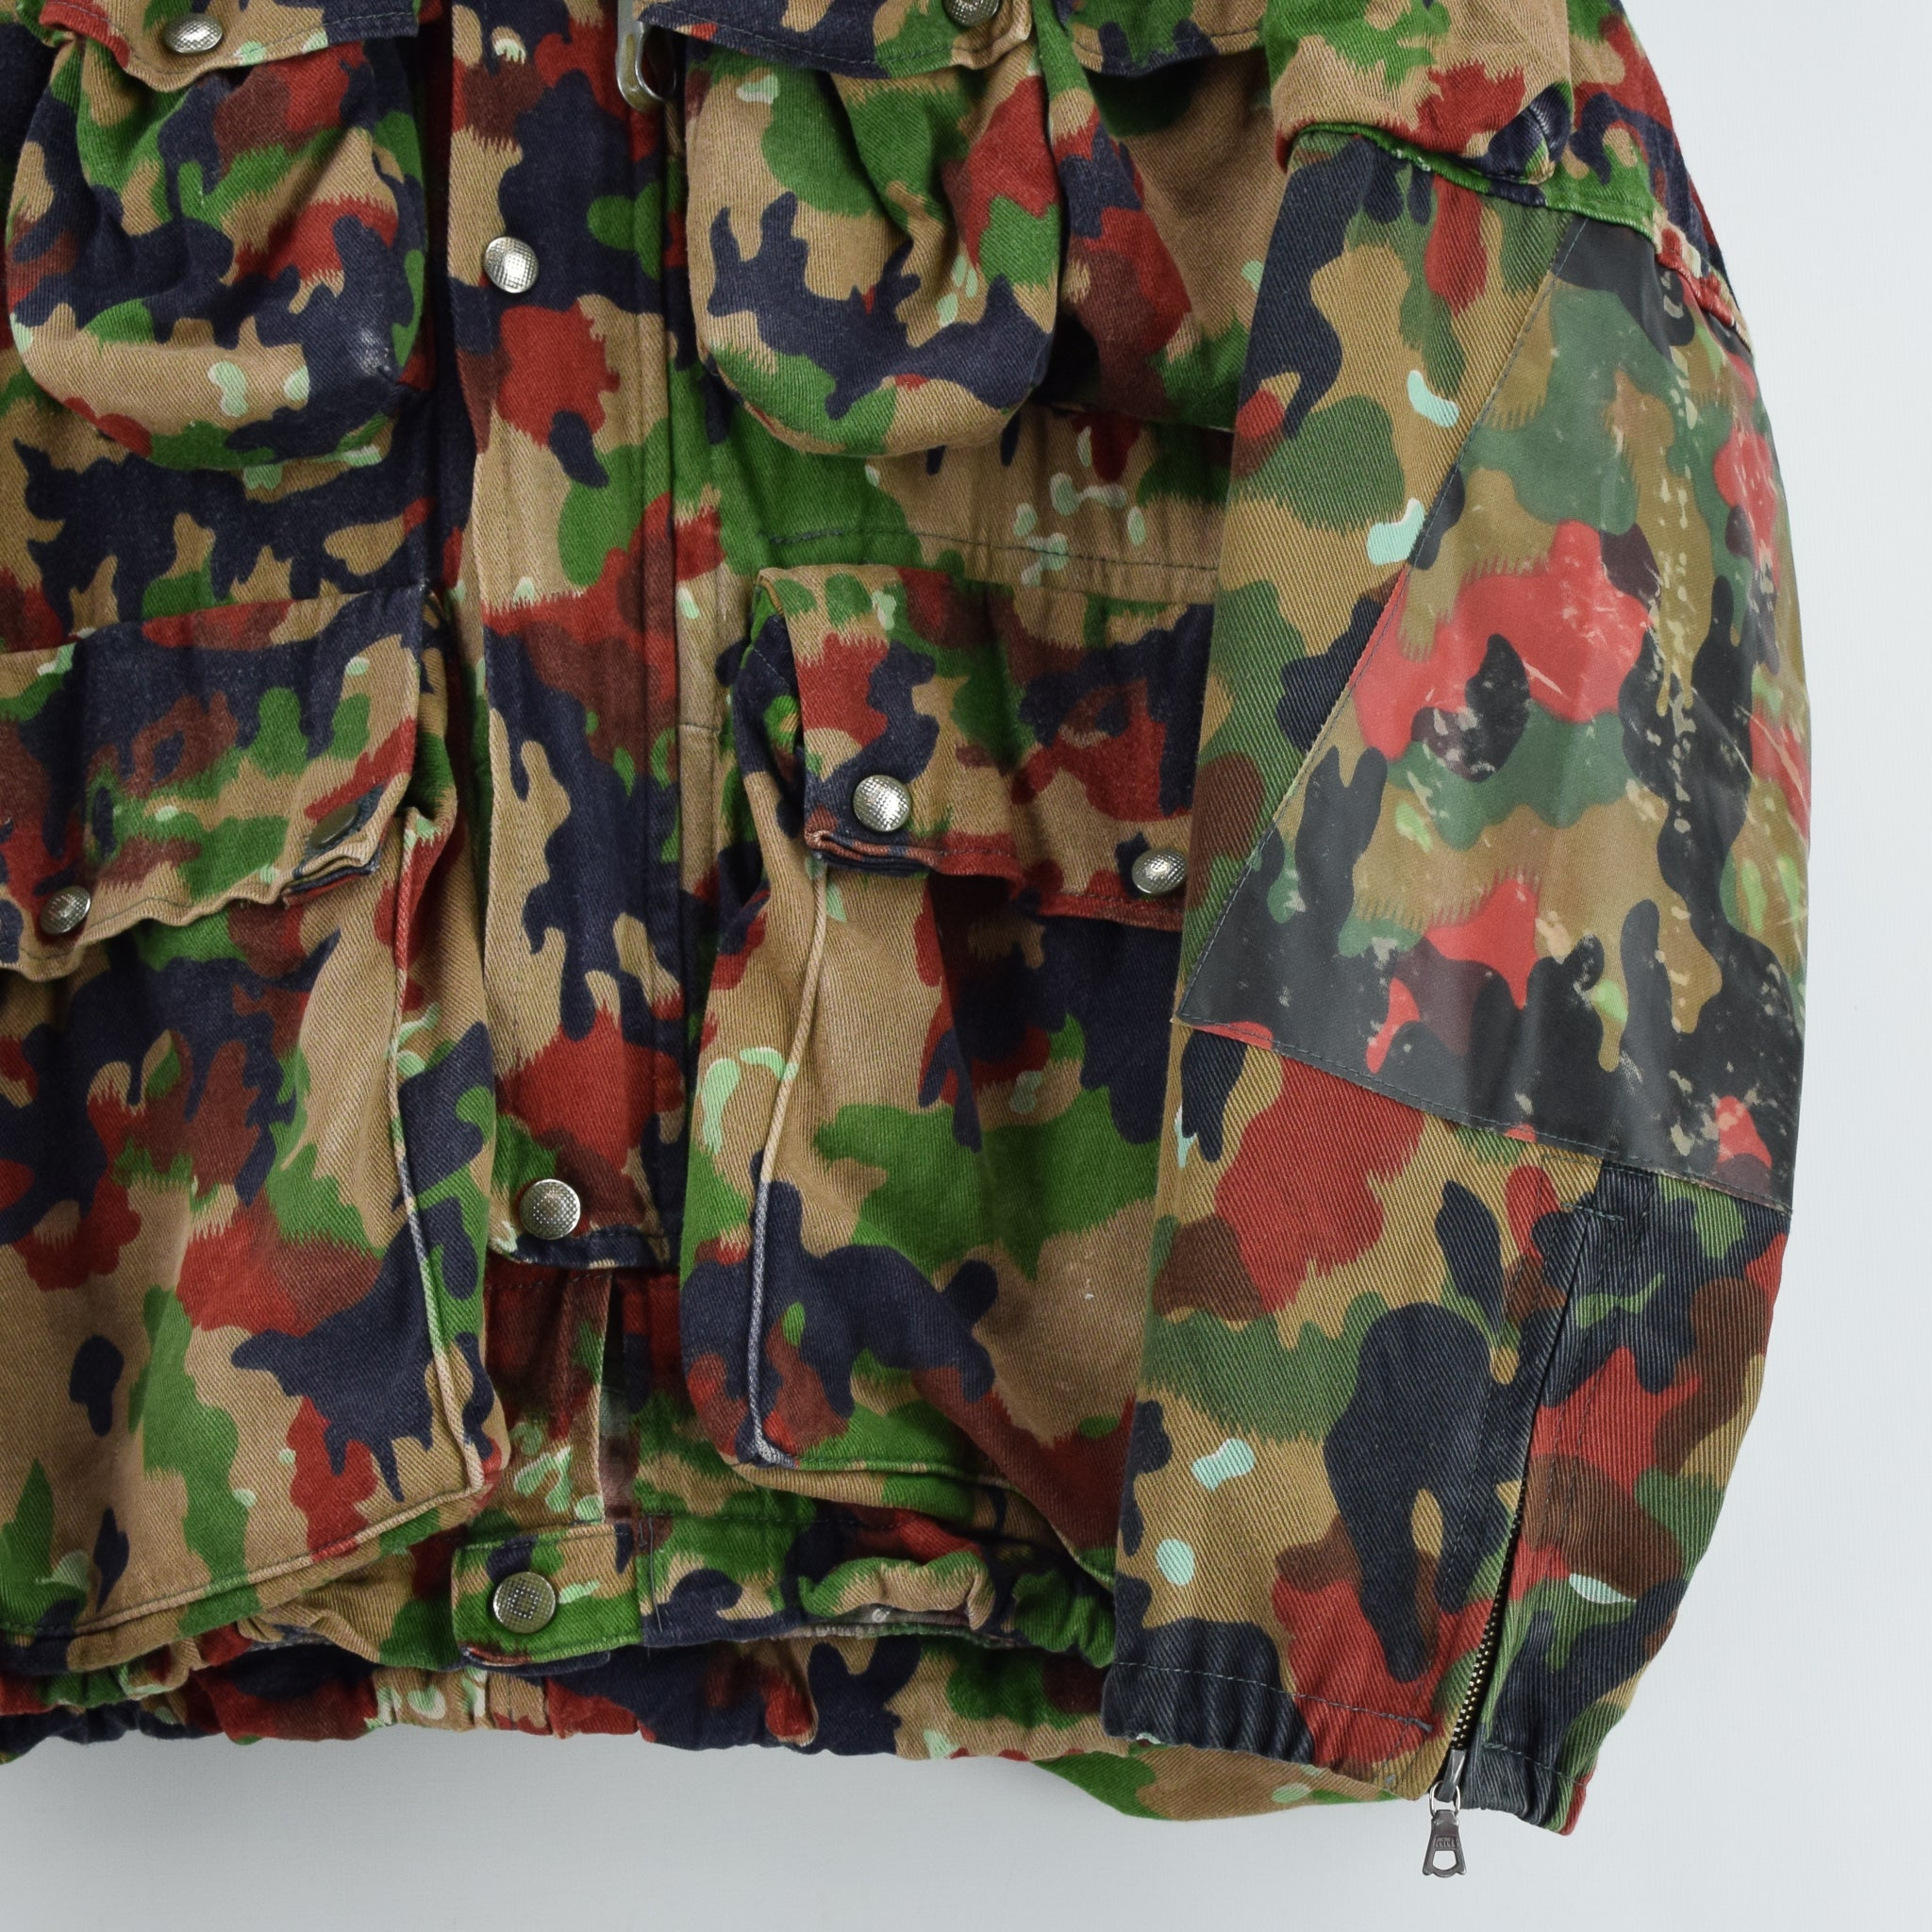 Vintage 70s Swiss Army Alpenflage Camo Sniper Combat Field Jacket S / M front hem